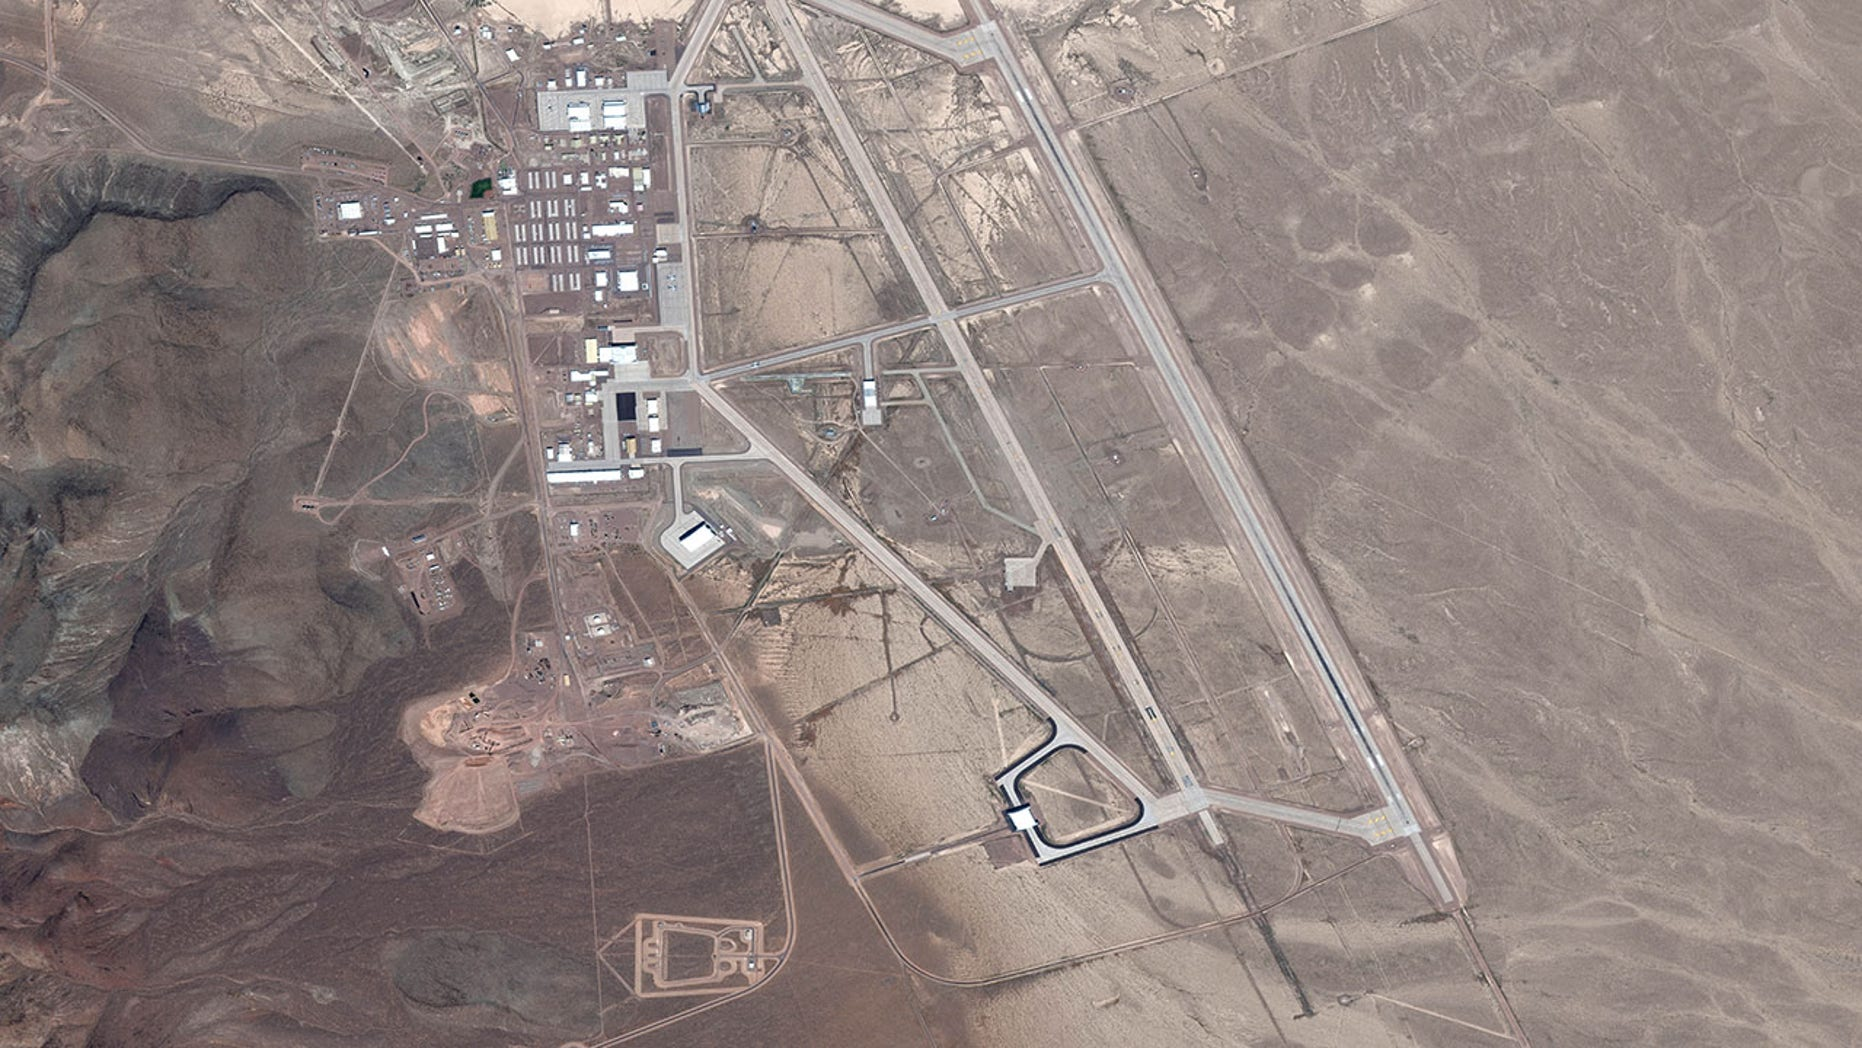 AREA 51, NEVADA, USA, JULY 20, 2016: DigitalGlobe satellite picture Area 51. The United States Air Force trickery ordinarily famous as Area 51 is a remote unconcern of Edwards Air Force Base, within a Nevada Test and Training Range. (Photo DigitalGlobe around Getty Images)